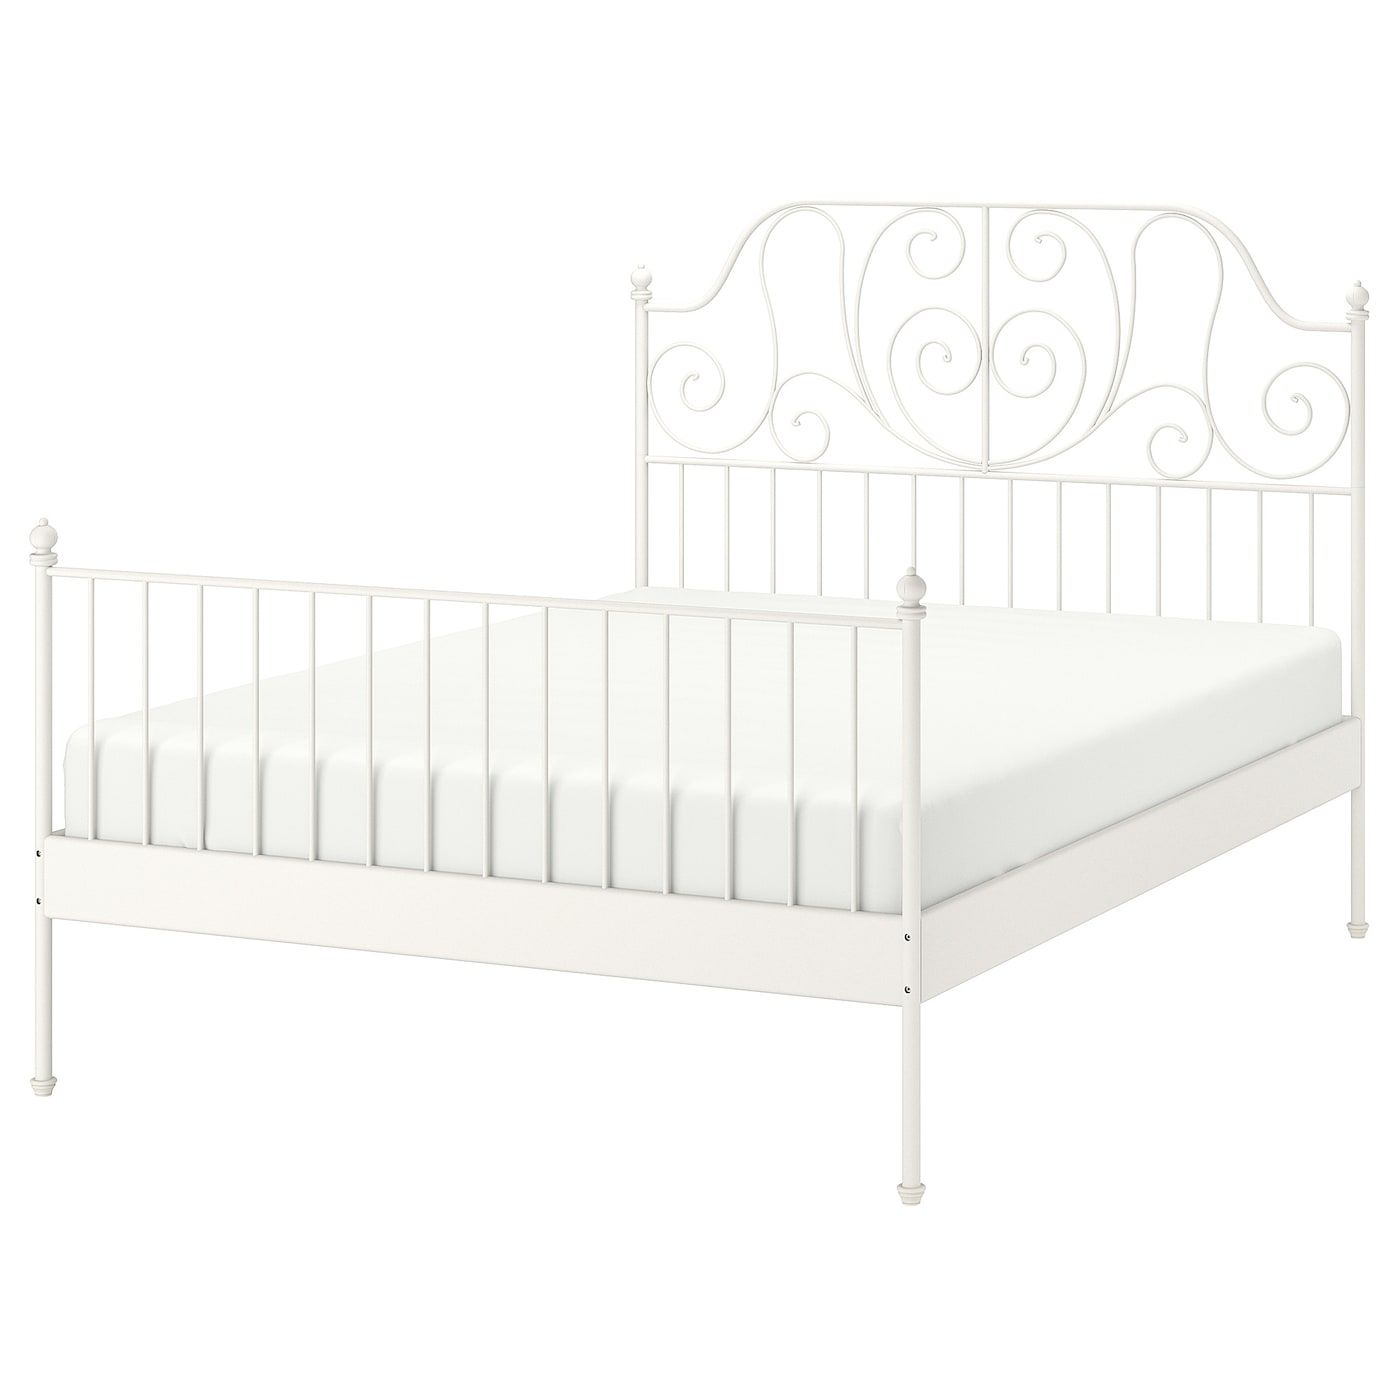 Ikea Leirvik Bed Frame White Luroy The Light And Airy Design Together With The Sturdy Metal Bed Frame Will Stand T Leirvik Bed Bed Frame Comfort Mattress